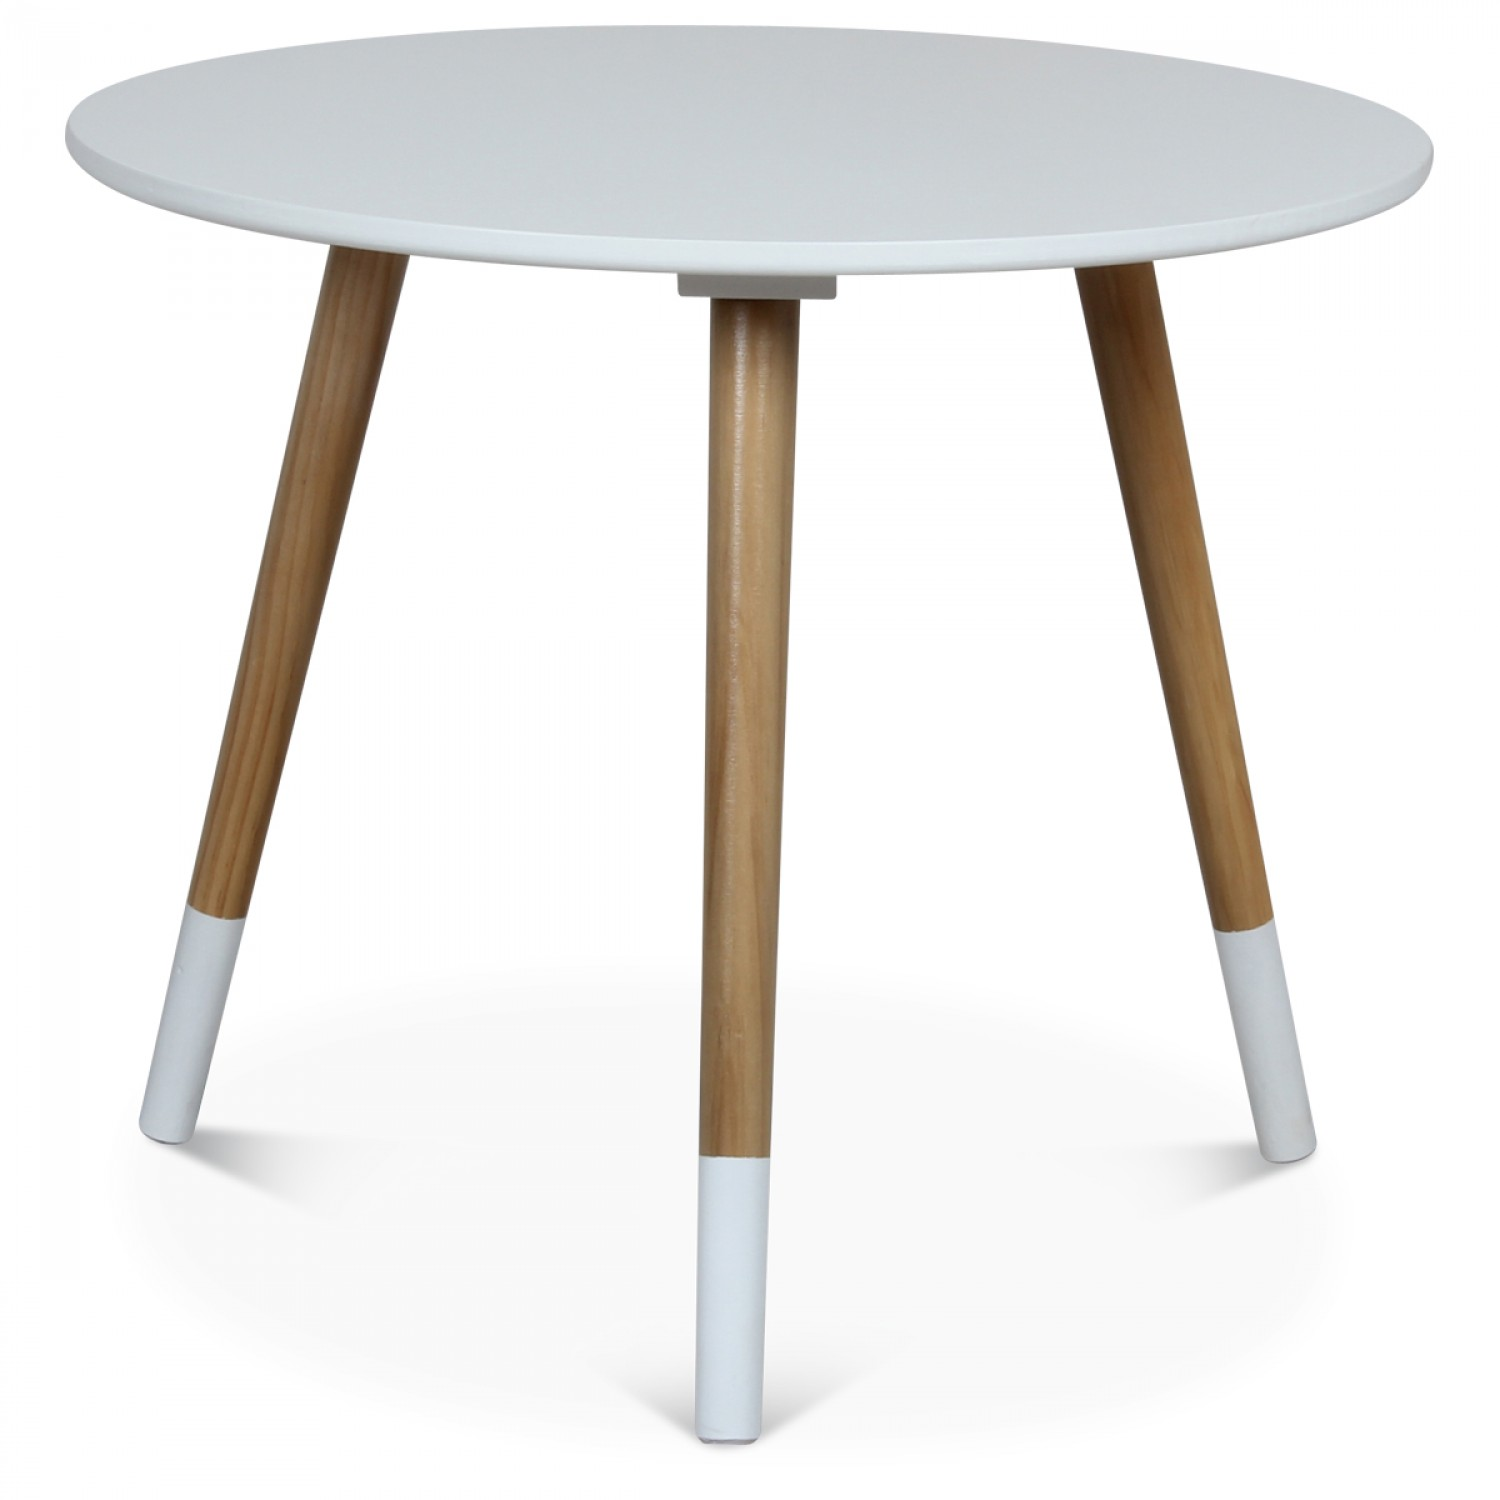 Table Basse Scandinave Blanche F Skit Diam Tre 50 Cm Demeure  # Table Basse Scandinave Laque